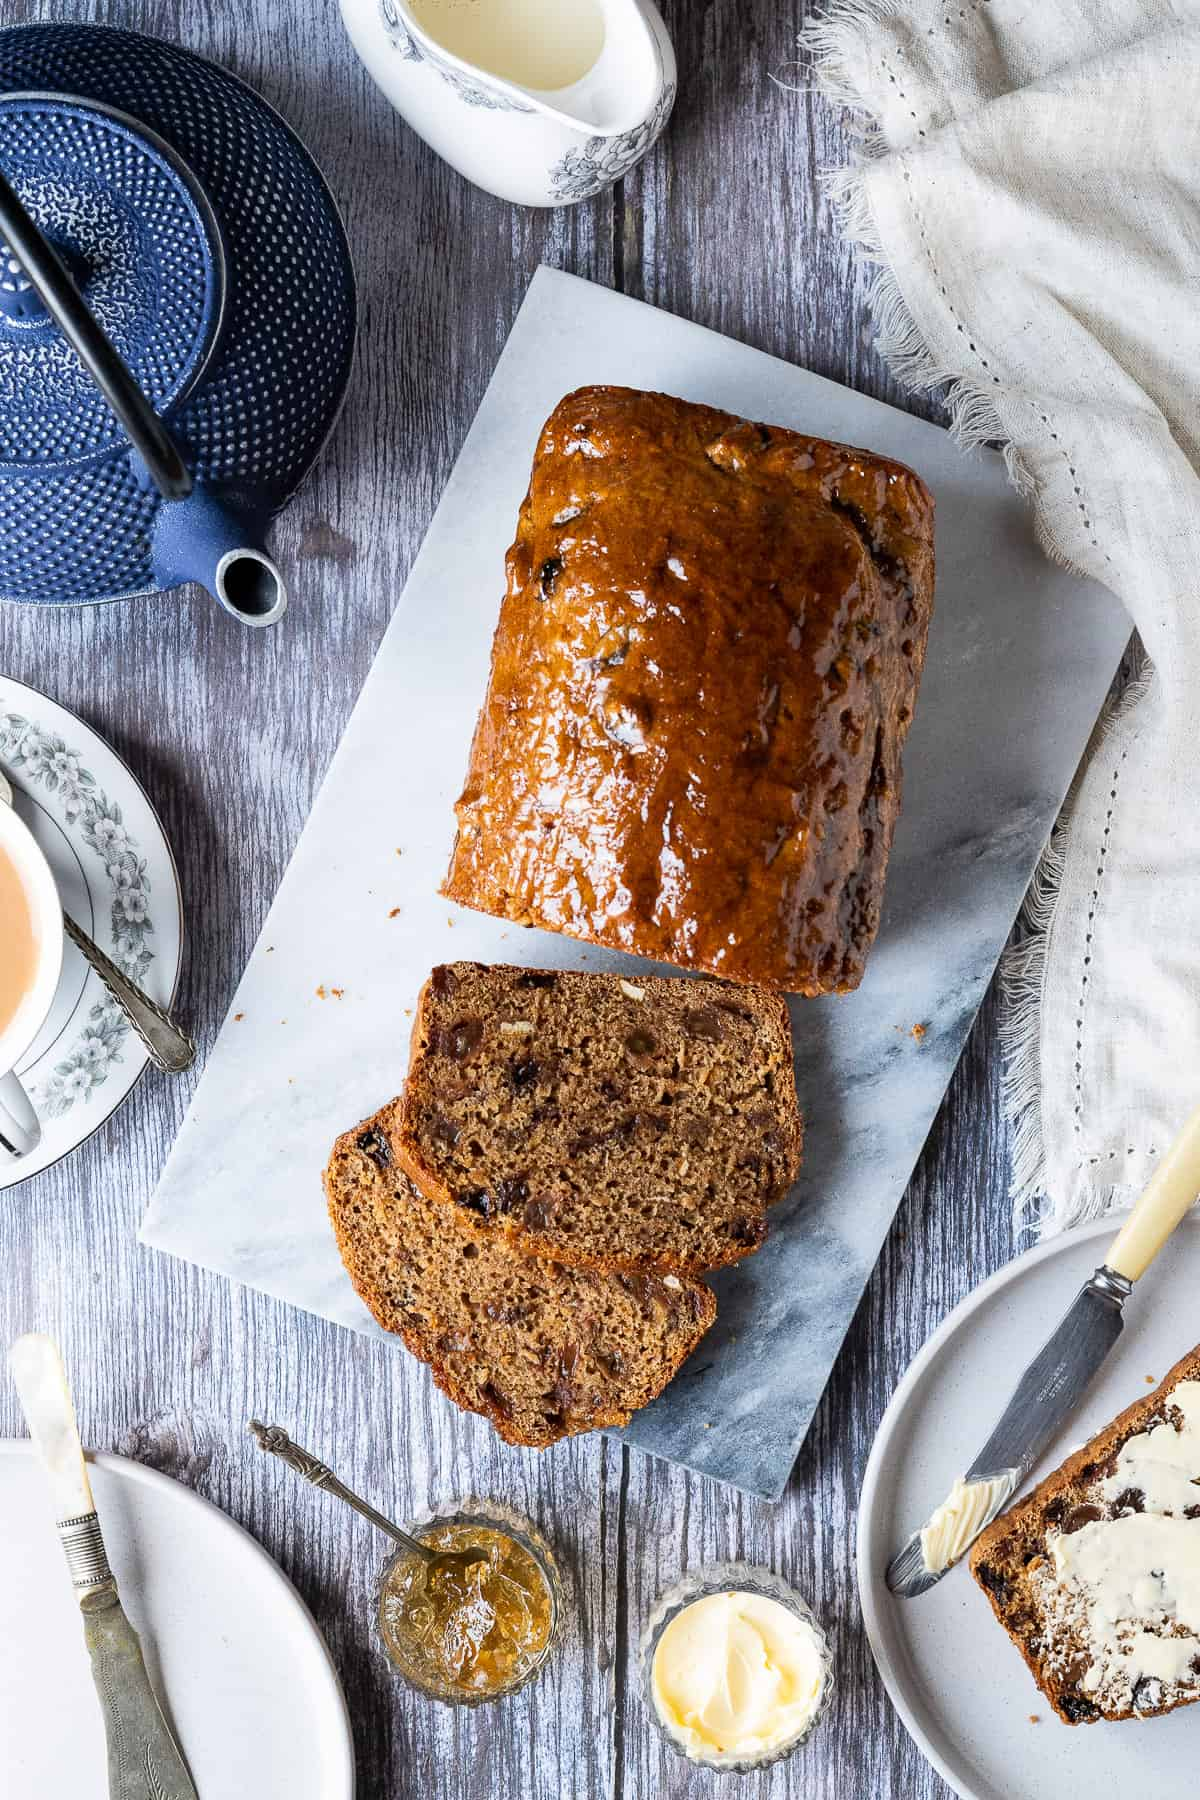 Vegan Earl Grey tea loaf on a marble board on a wooden table with a blue teapot, plates, knives, bowls of butter and marmalade, cup of tea and jug of milk.